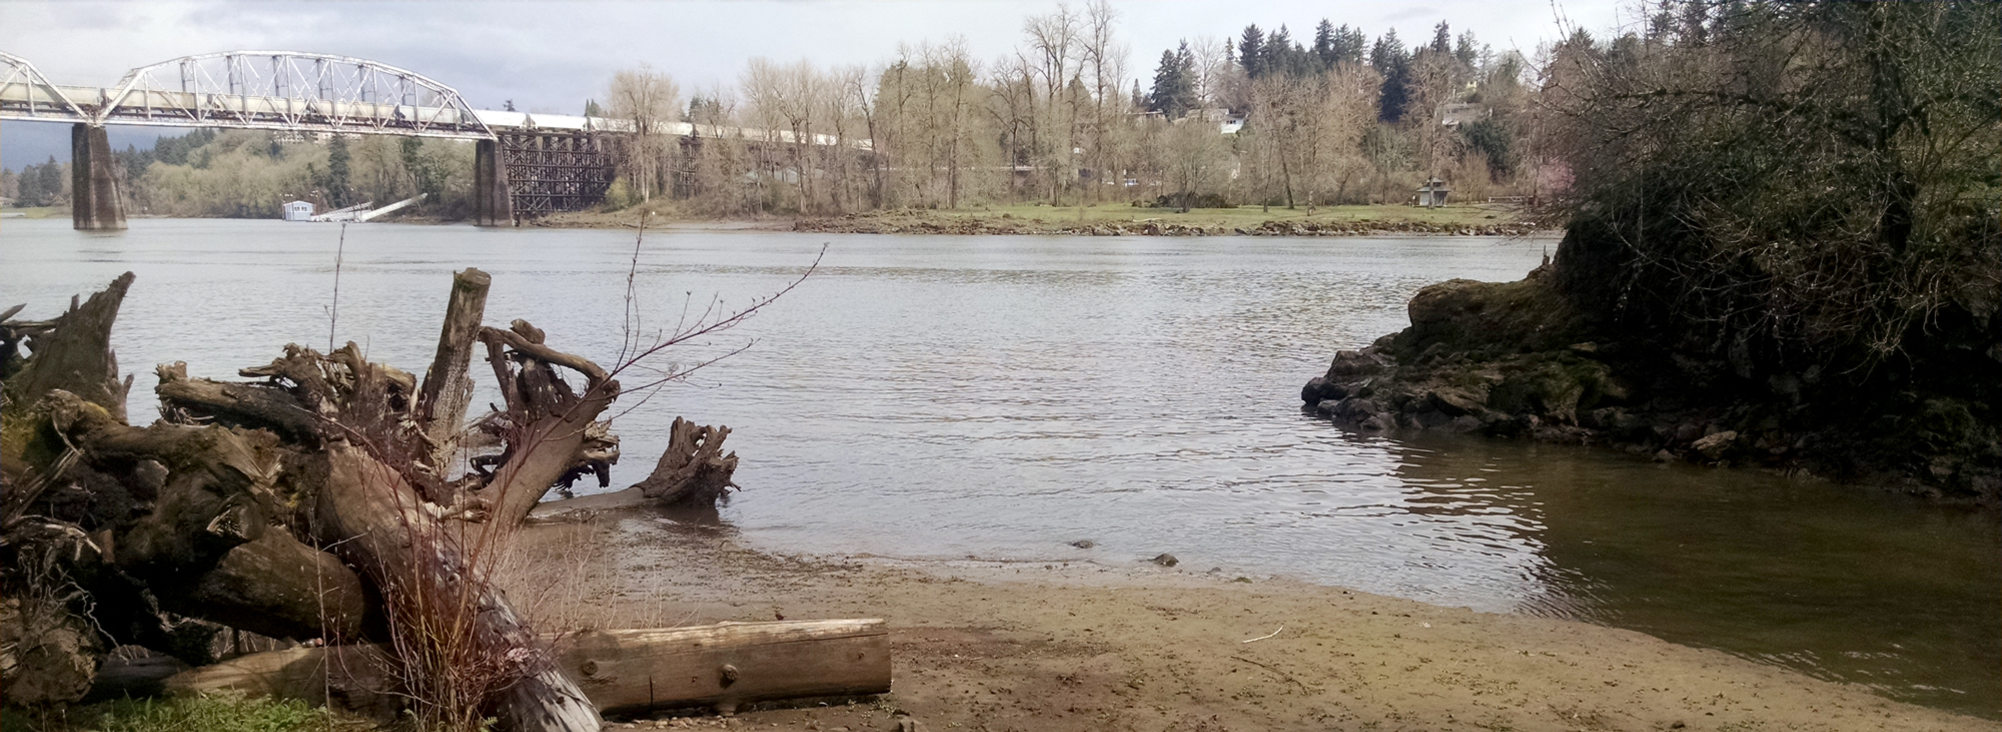 Tryon Creek and Willamette River confluence